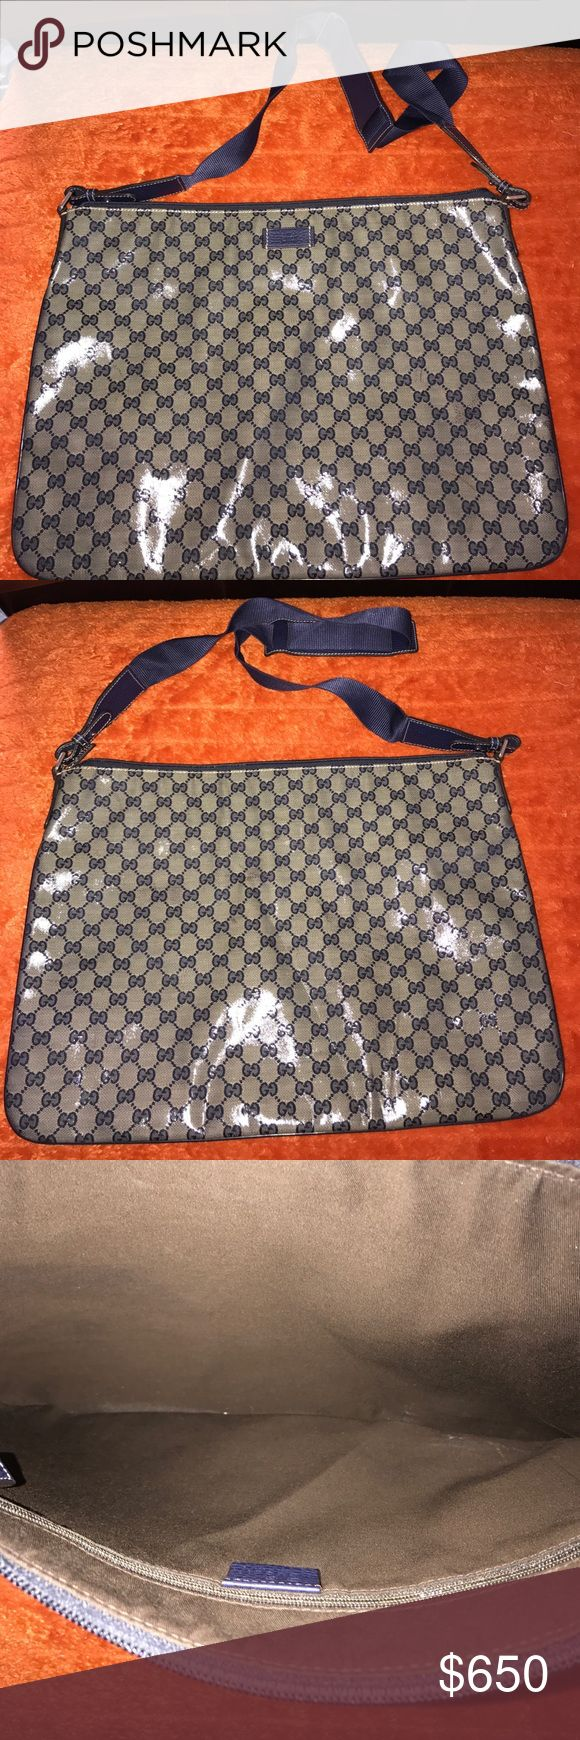 Large Gucci messenger bag Bag is brand new carried once! 12 inches in length and 18 inches in width. Navy blue. No dust bag at this time. Currently cleaning out my closets. If I come across the dust bag I will pay for shipping and send it separately. Gucci Bags Crossbody Bags